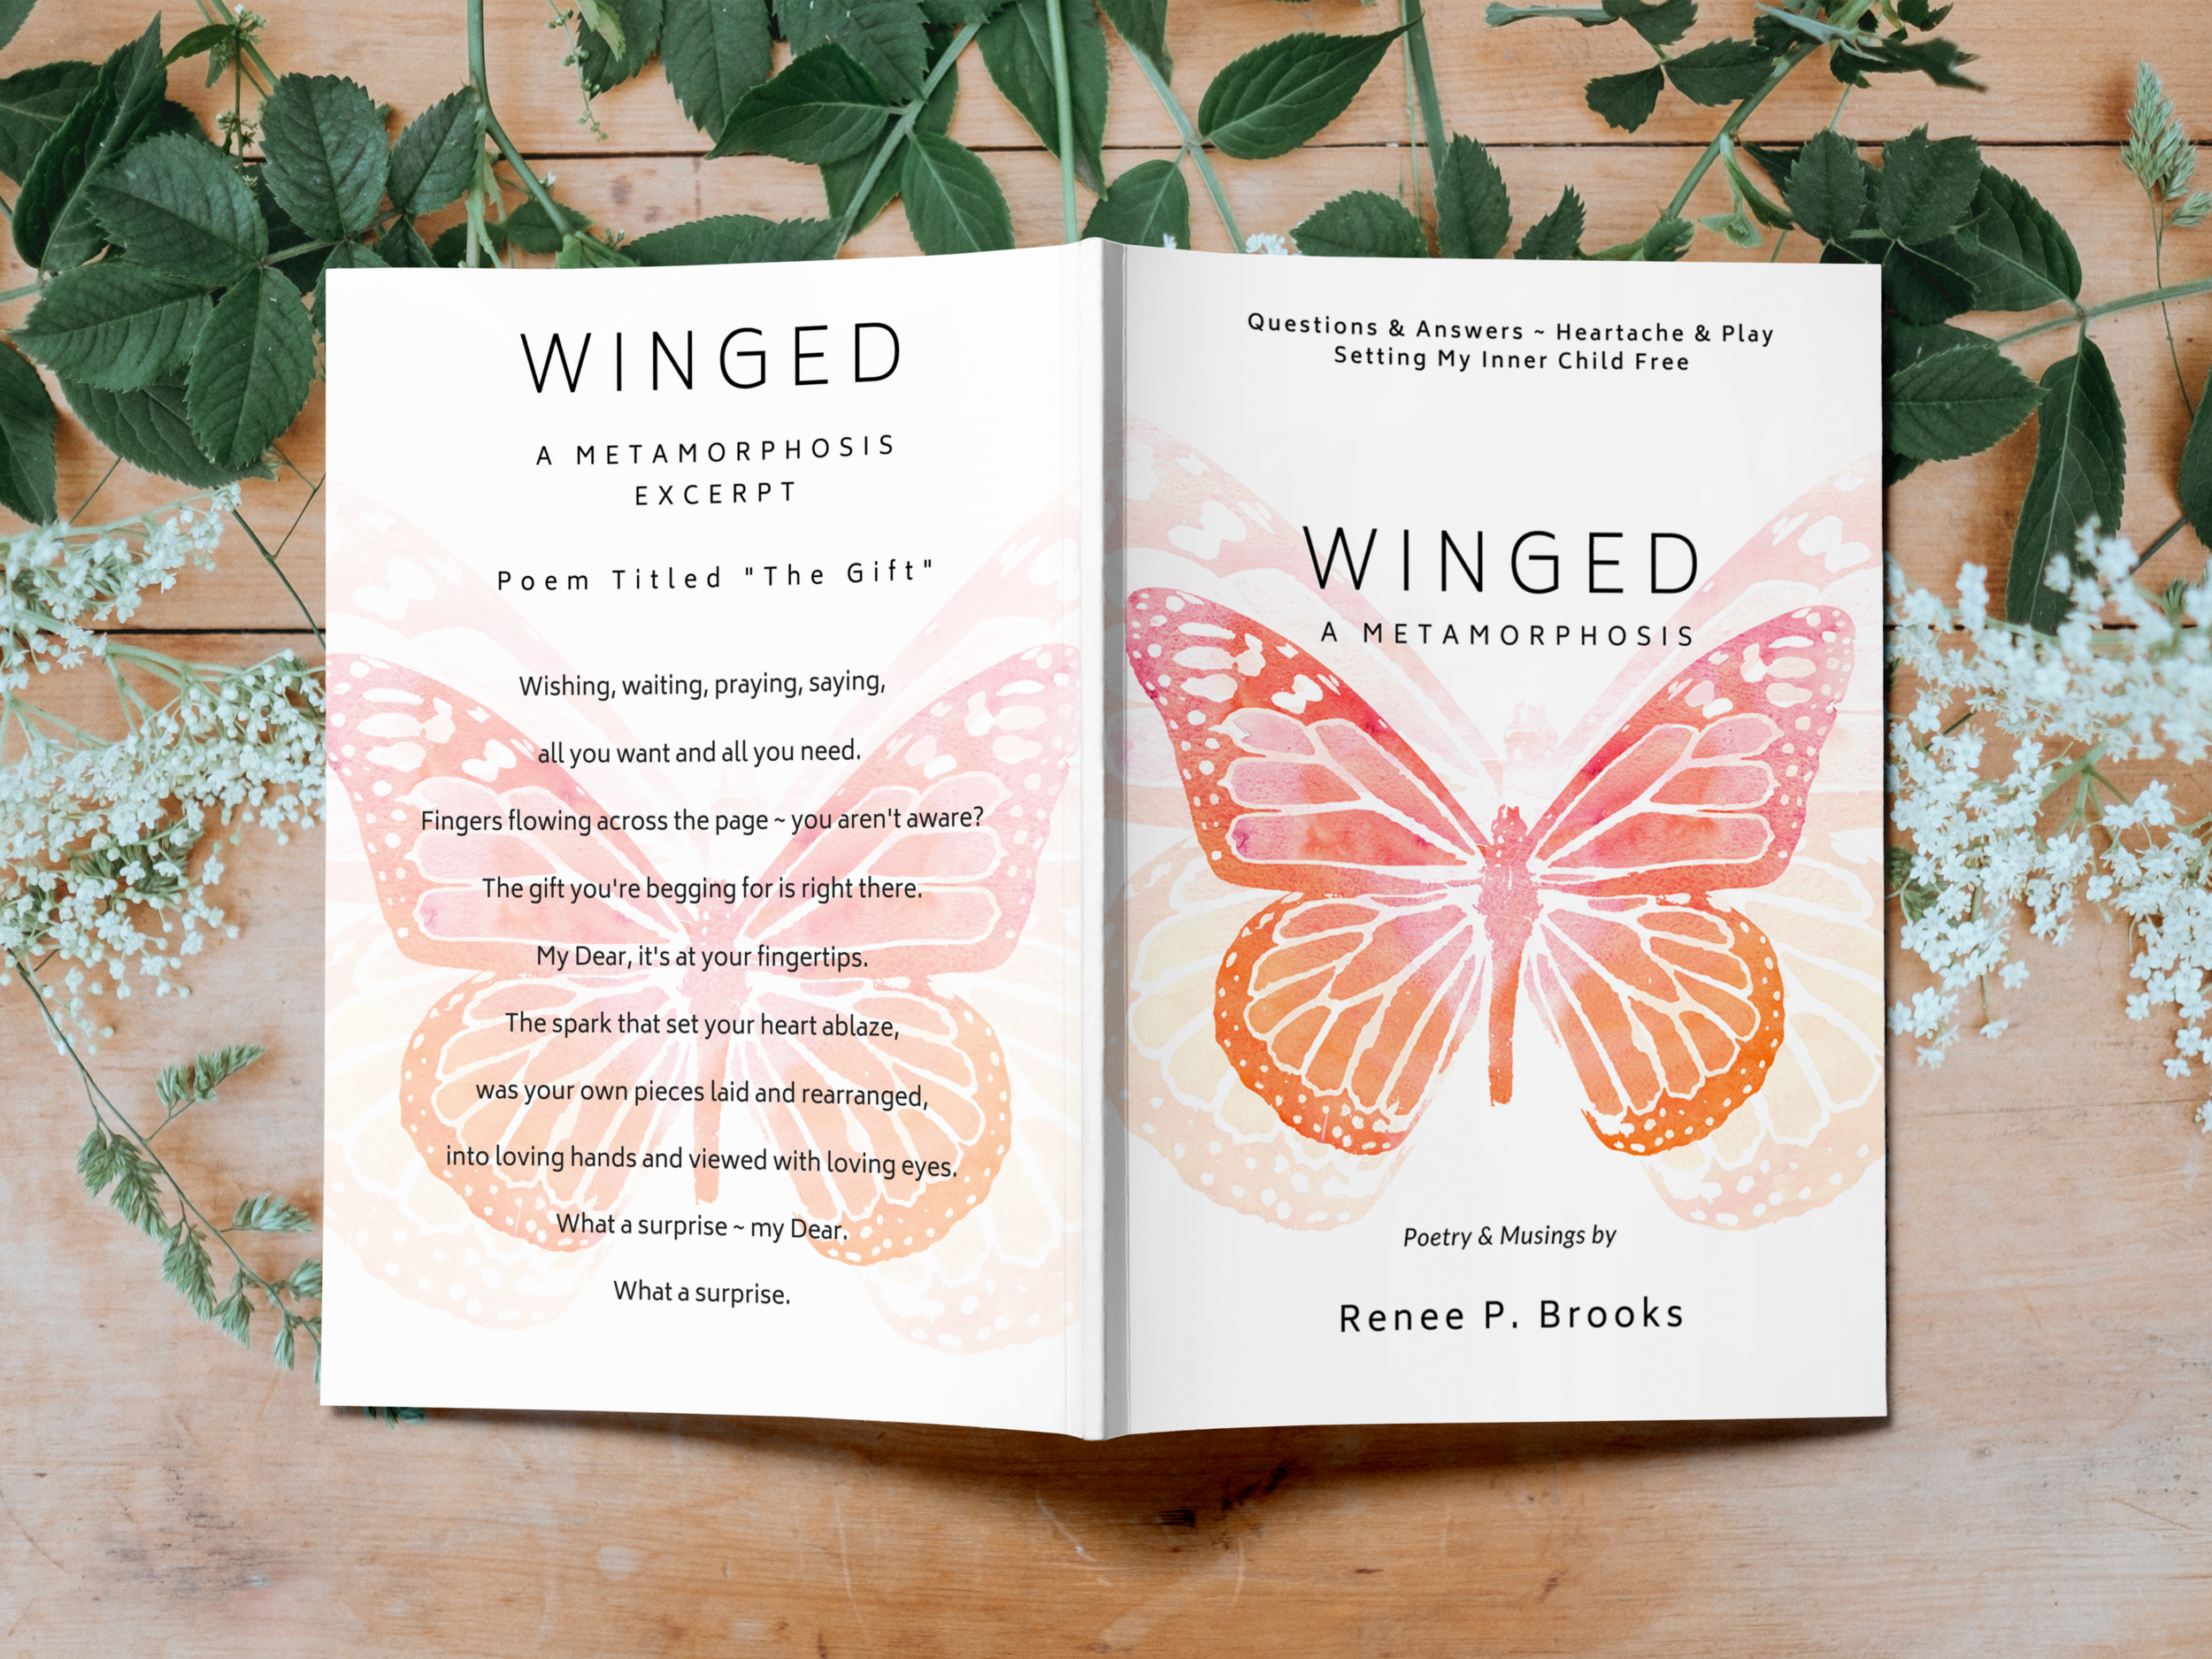 Winged A Metamorphosis Front & Back Covers